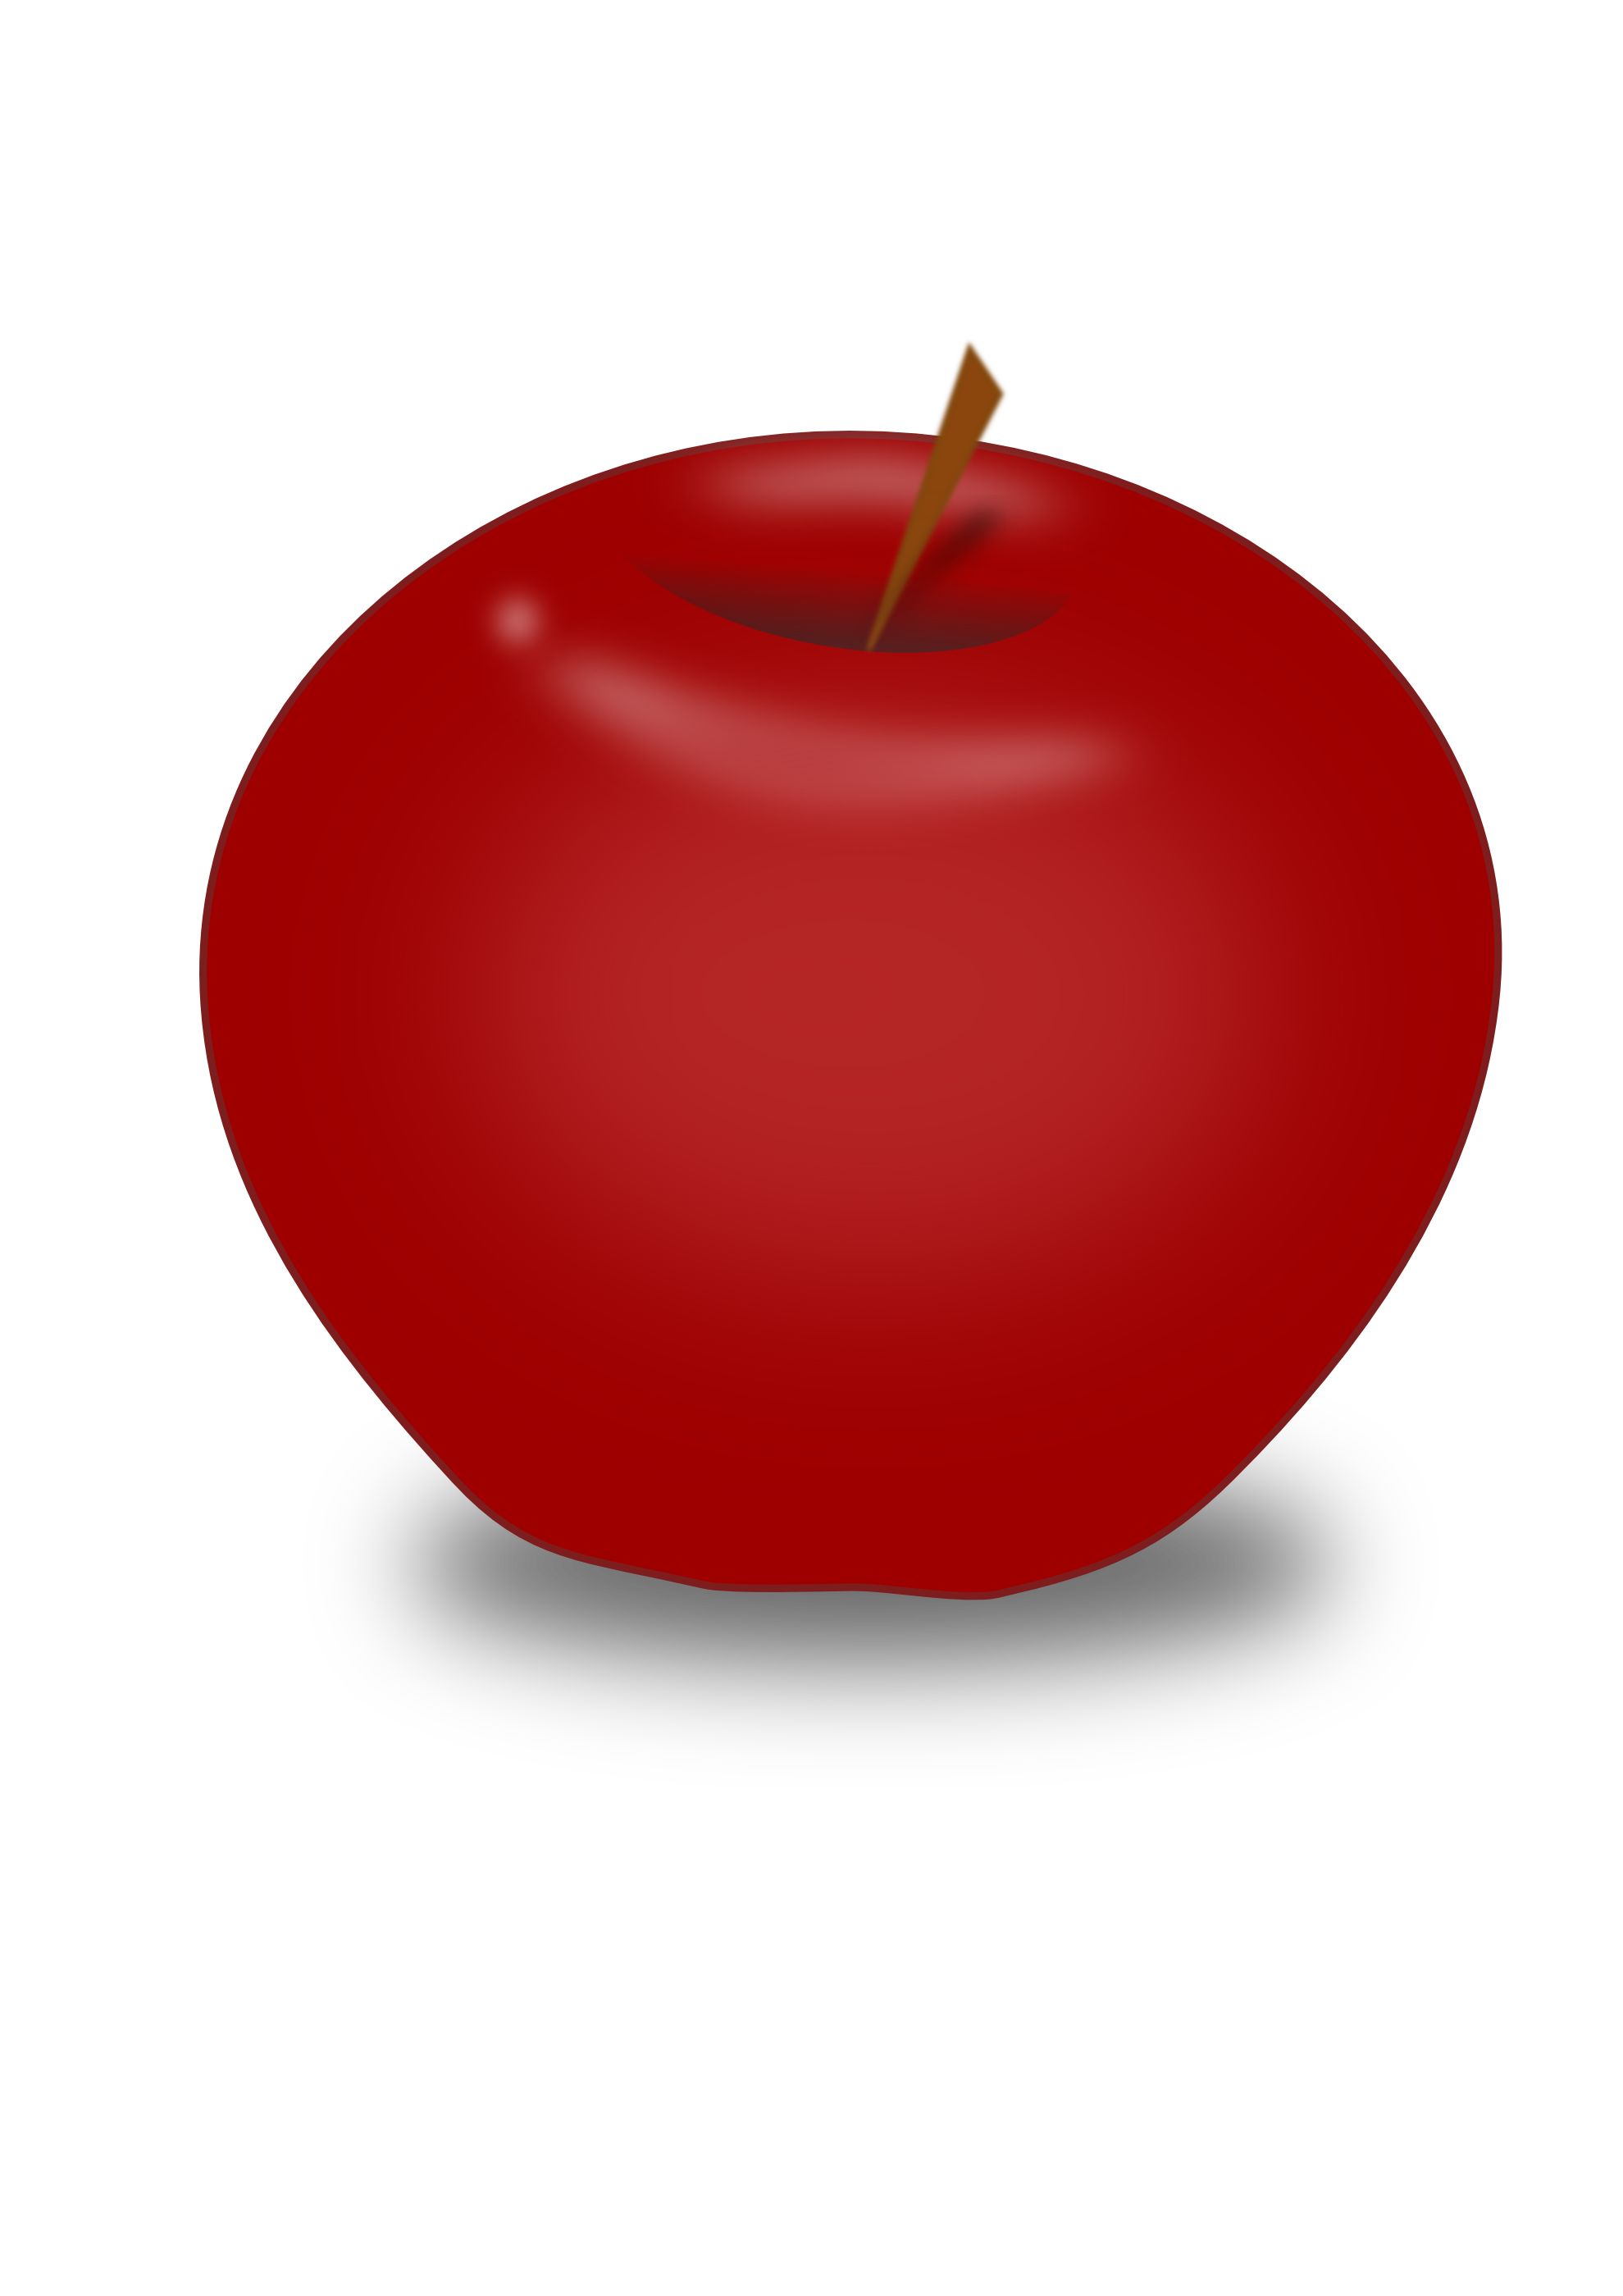 Apple on desk clipart picture transparent download Apple PNG images free download, apple PNG picture transparent download